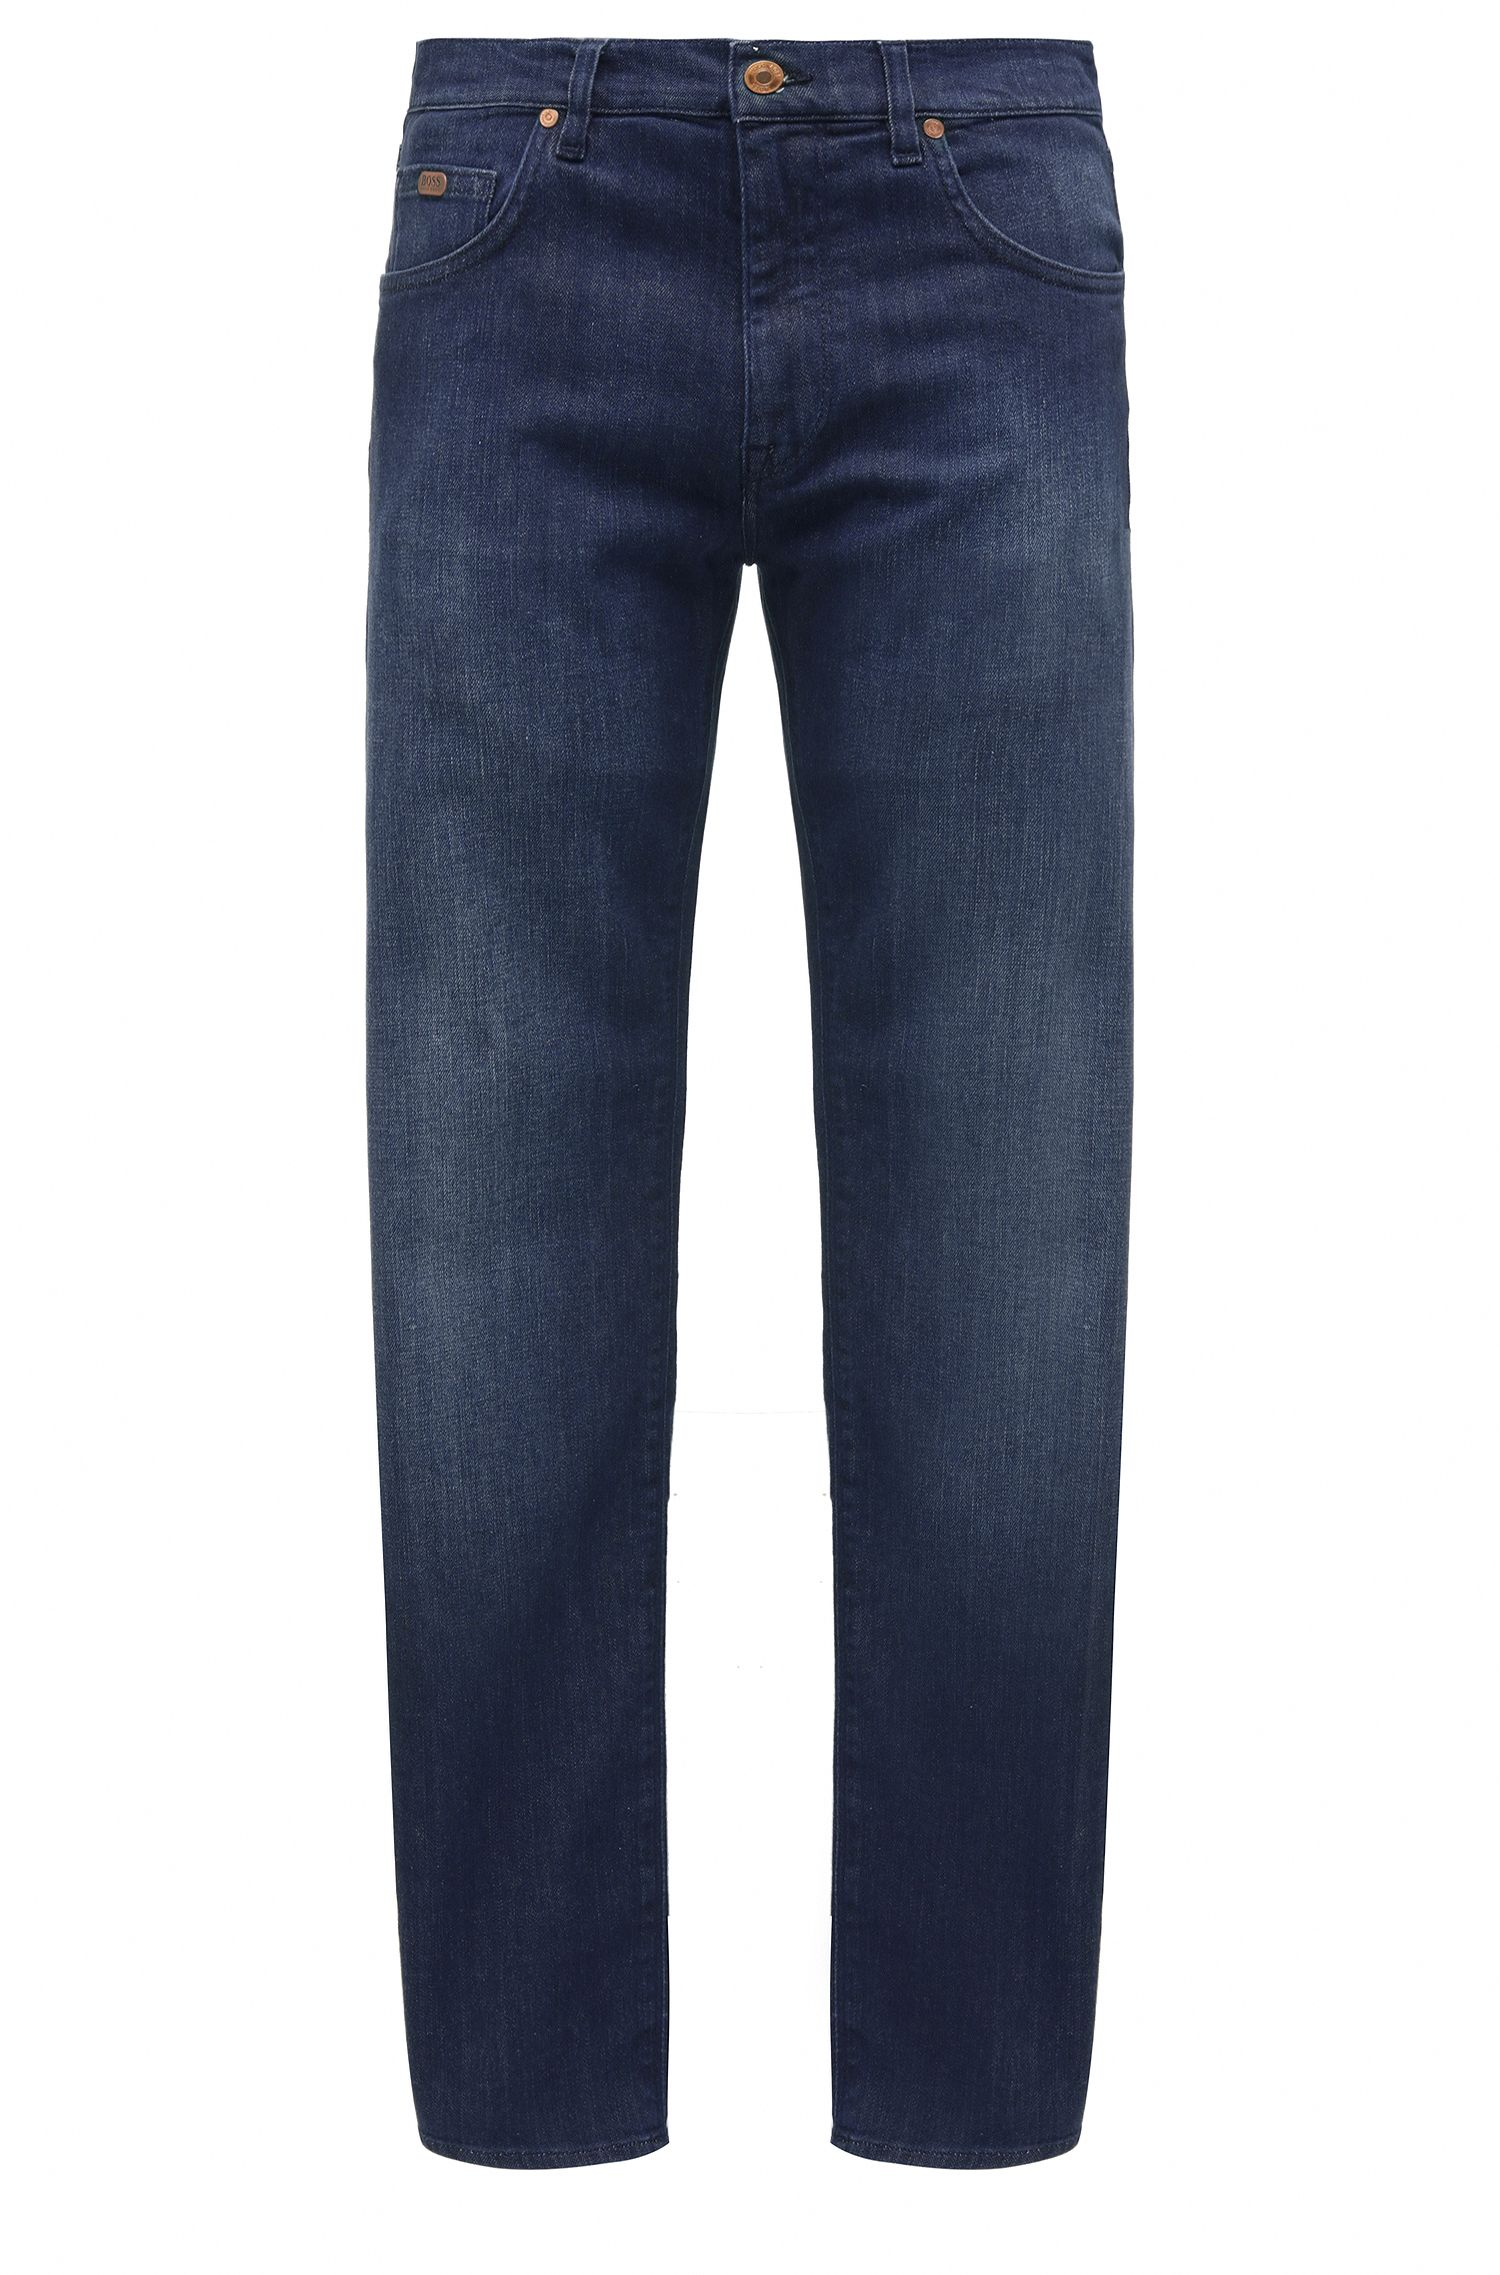 Regular-fit jeans in comfort-stretch denim